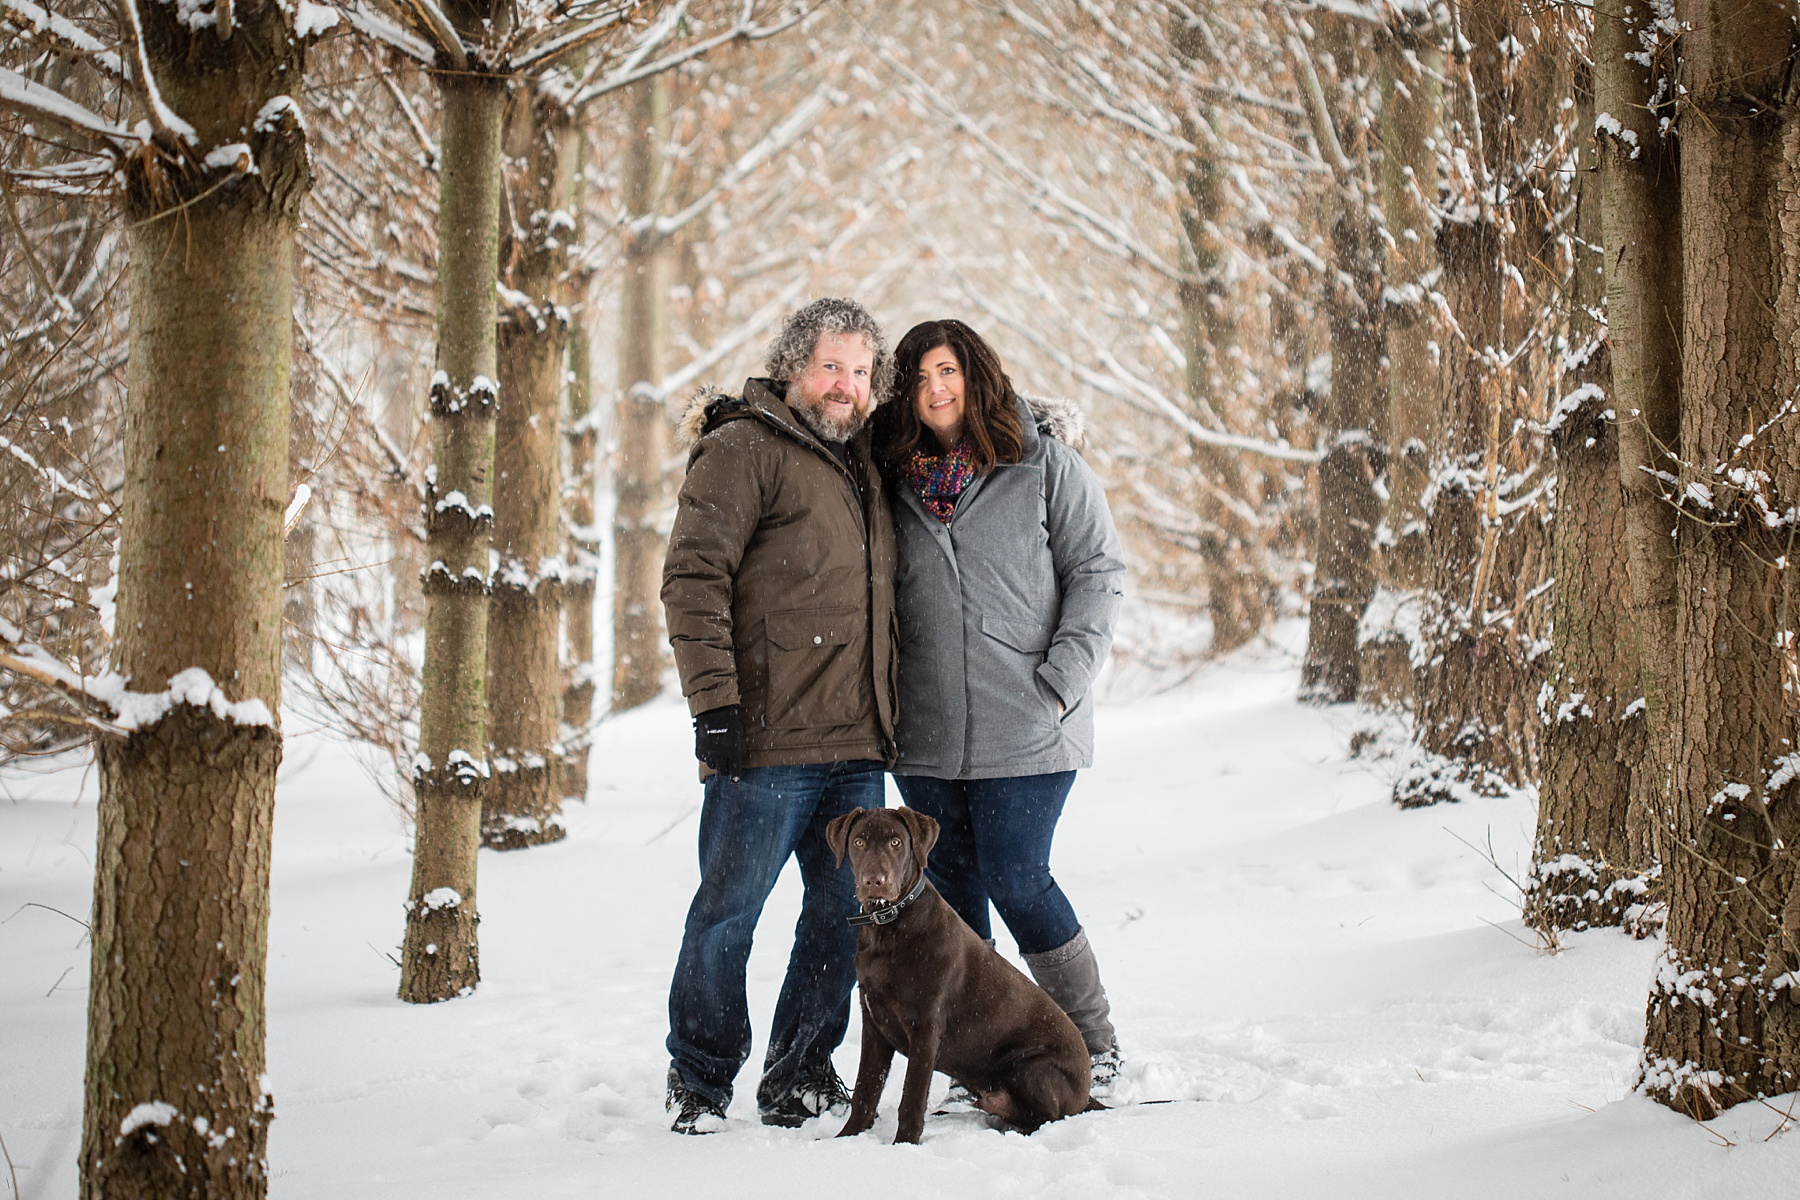 Brandon_Shafer_Photography_Winter_Engagement009.JPG